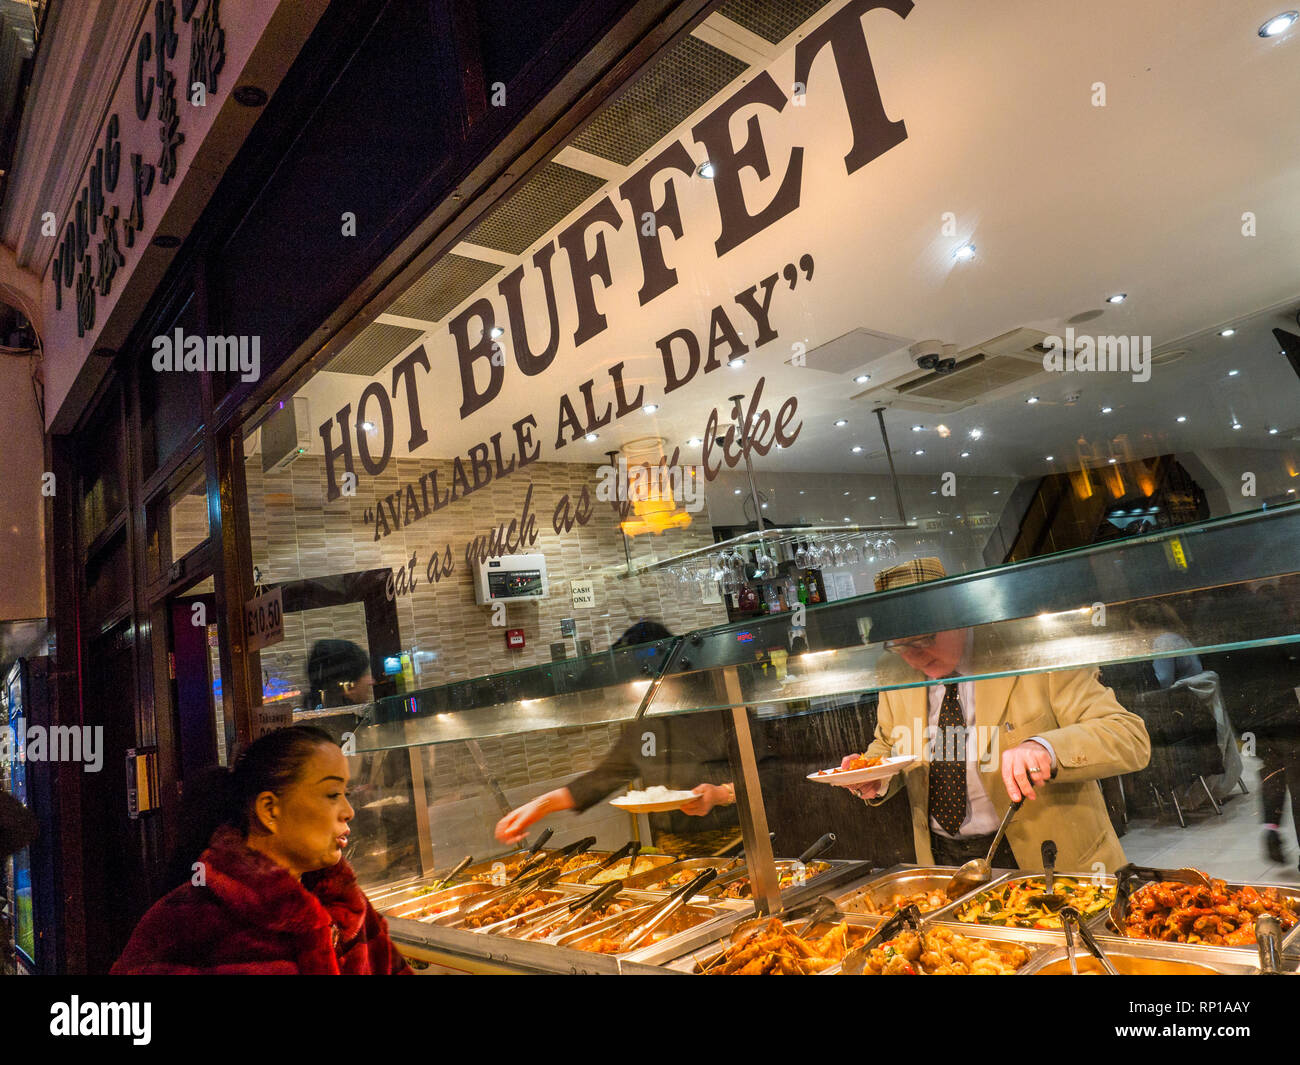 Chinese hot buffet selection 'eat as much as you like' window, with oriental woman looking appreciatively at the Chinese food varieties on open display.  Wardour Street Chinatown Soho London UK Stock Photo